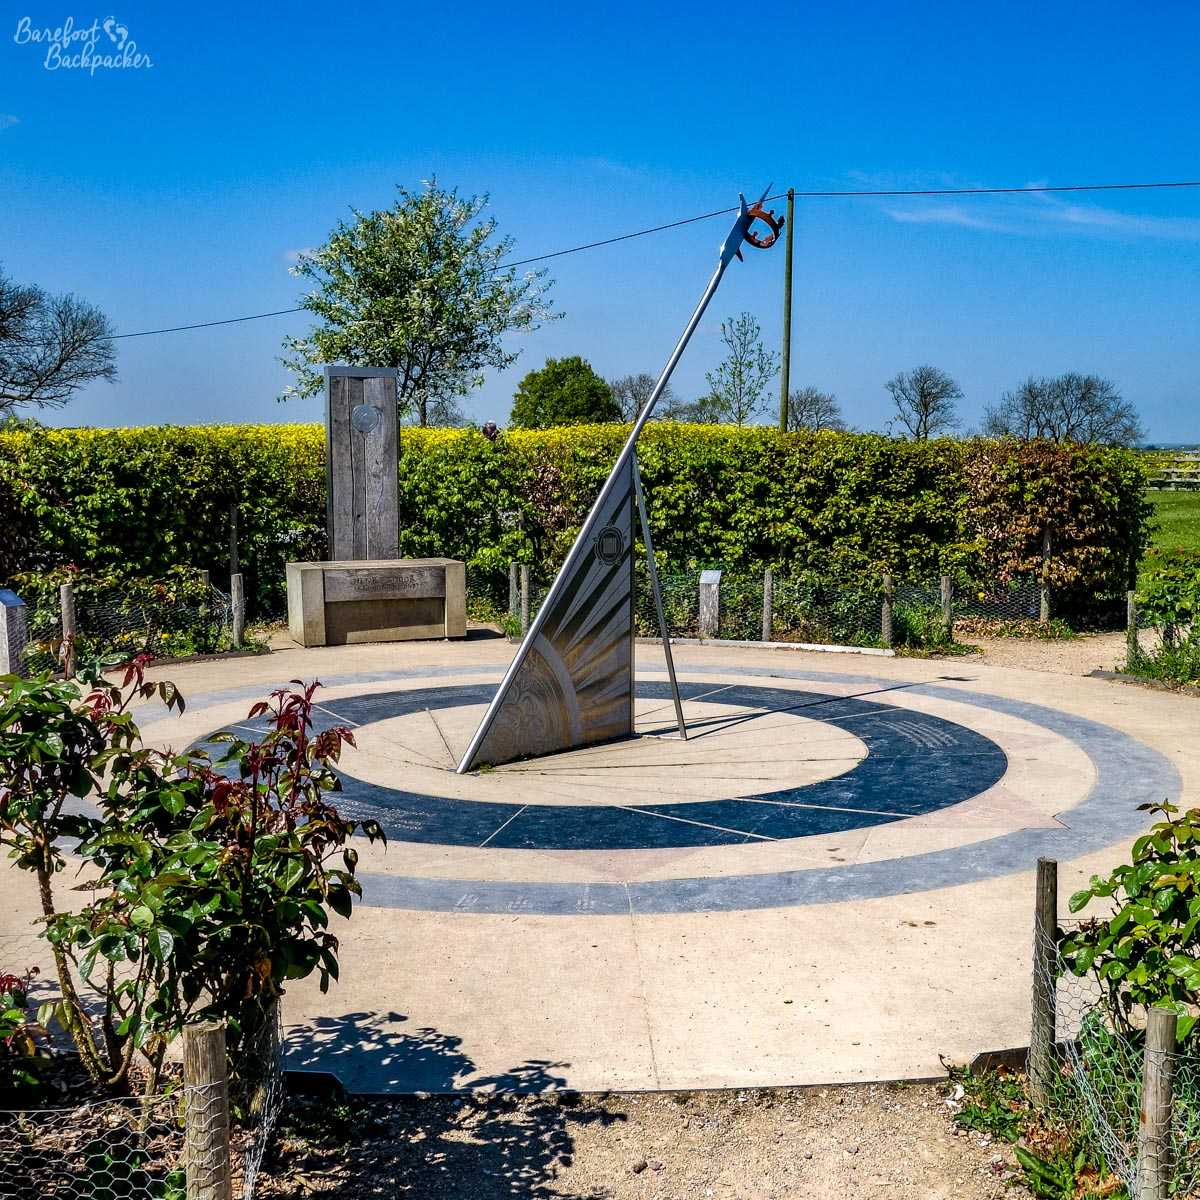 Memorial of the Battle of Bosworth, near the visitor centre.